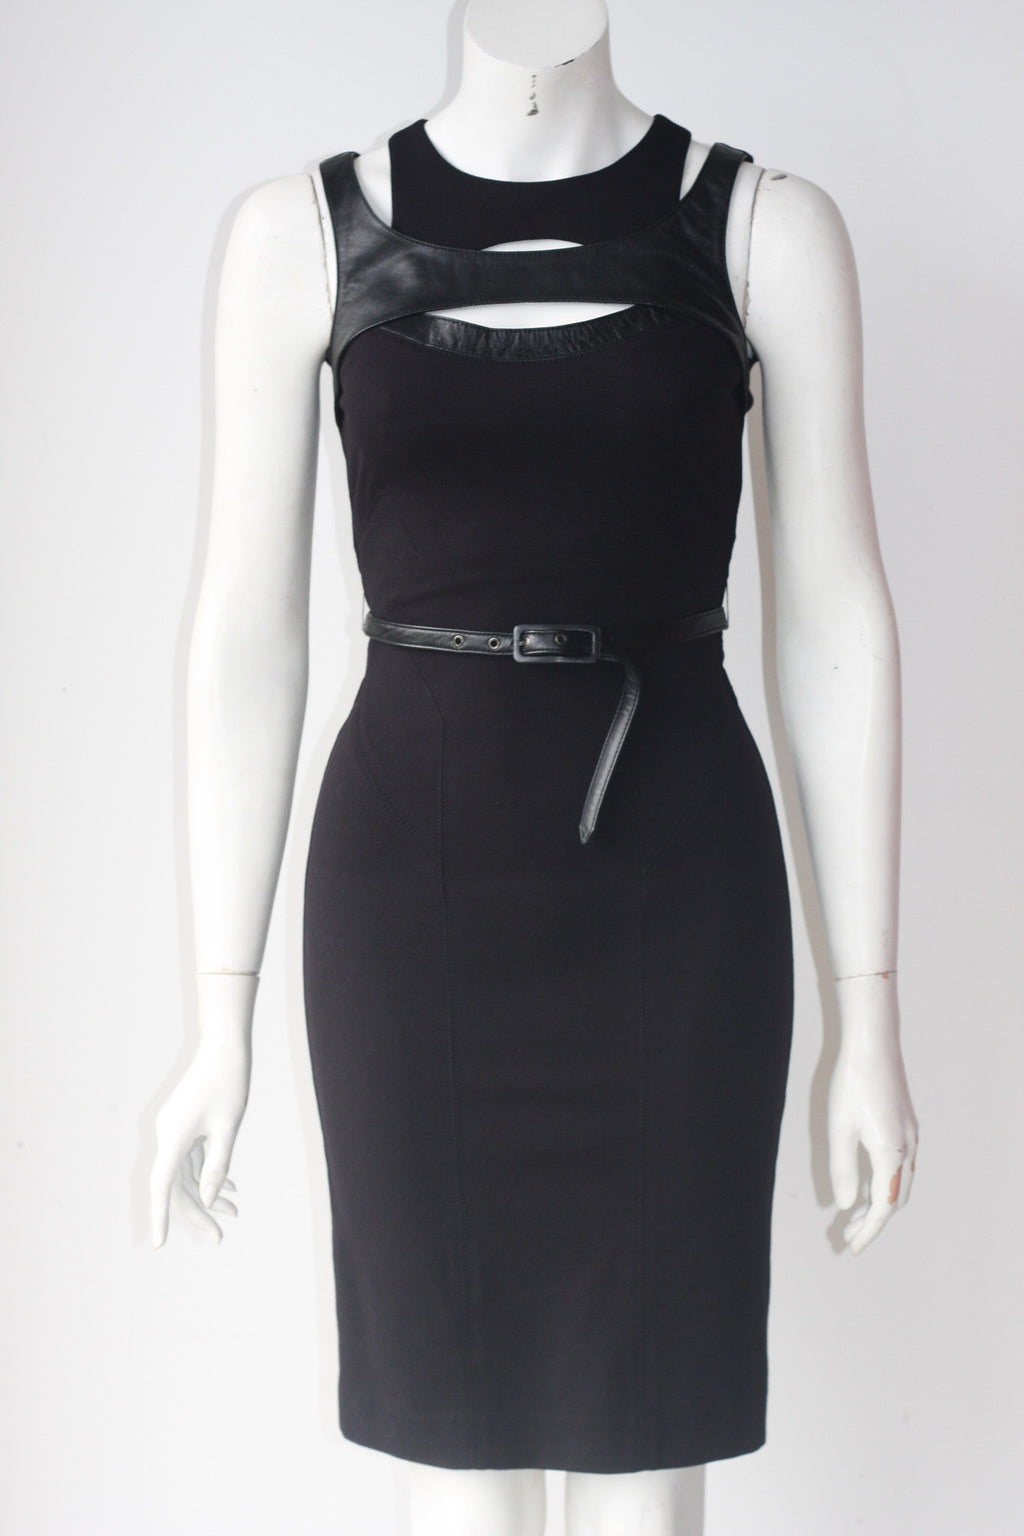 Guess By Marciano Black Cut-Out Dress - Joyce's Closet  - 1